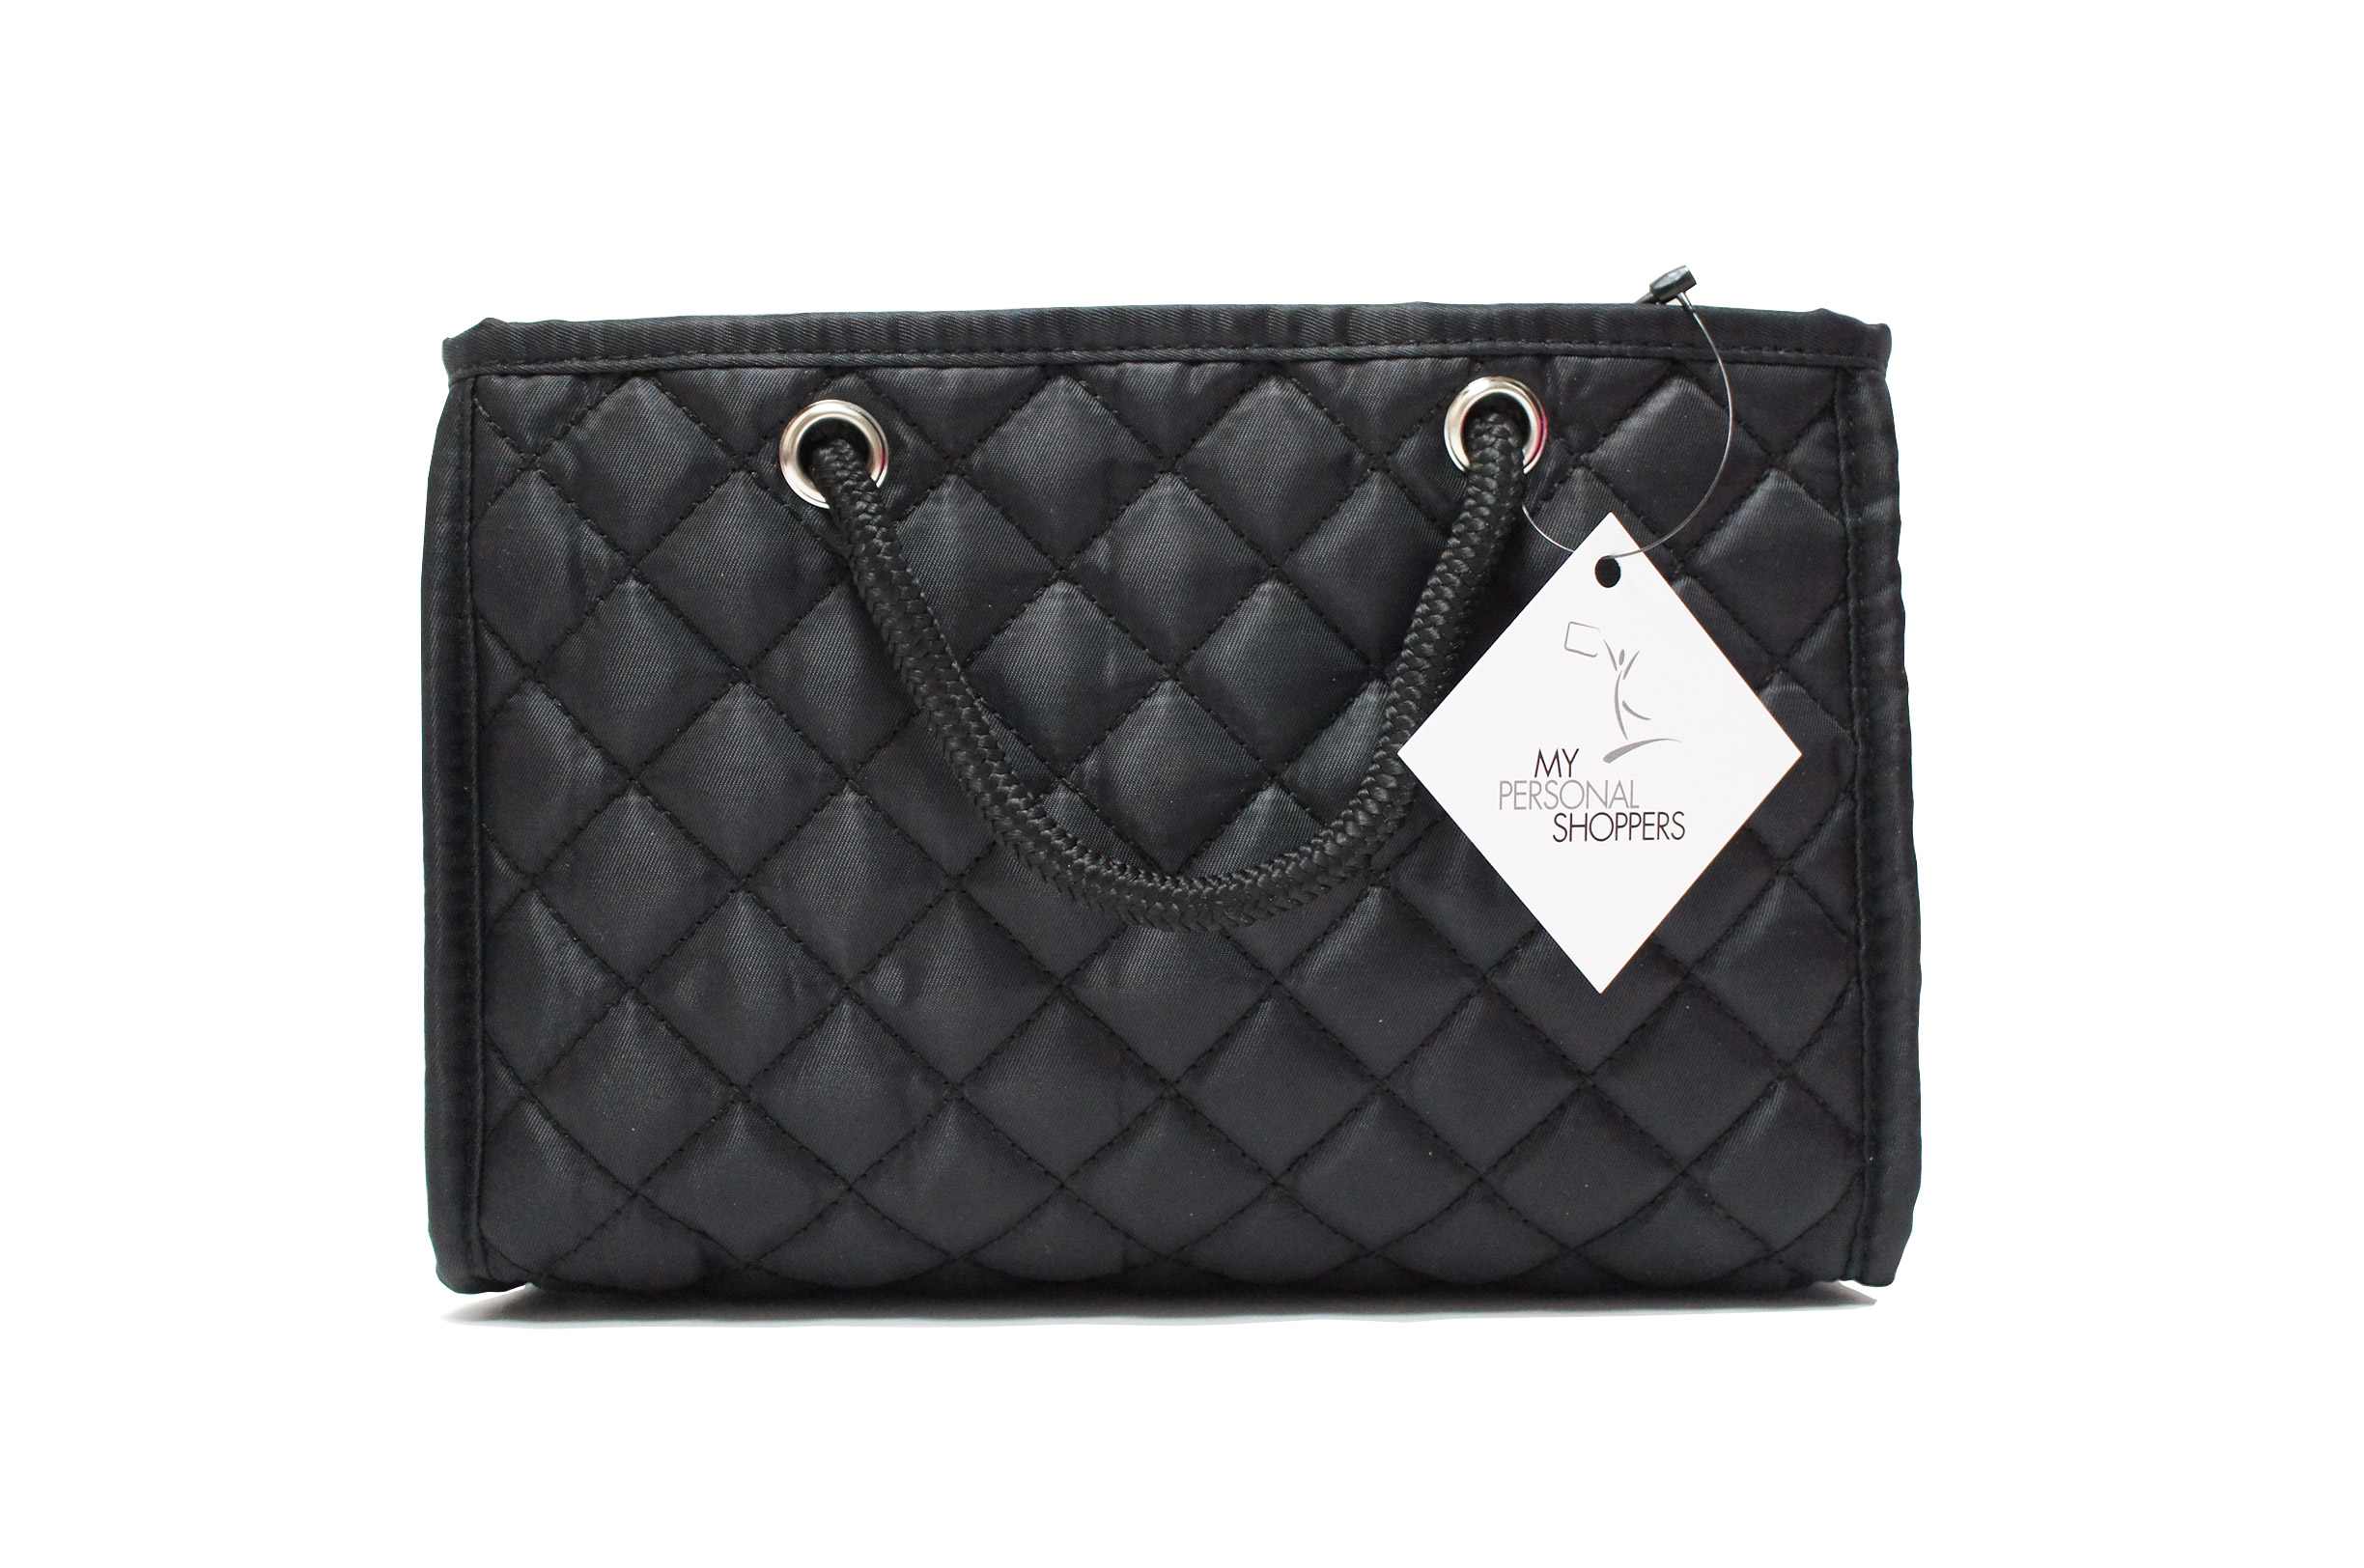 84e5cf6cd82da Zoe Quilted Handbag Organizer Insert with Removable Base Fits Your ...